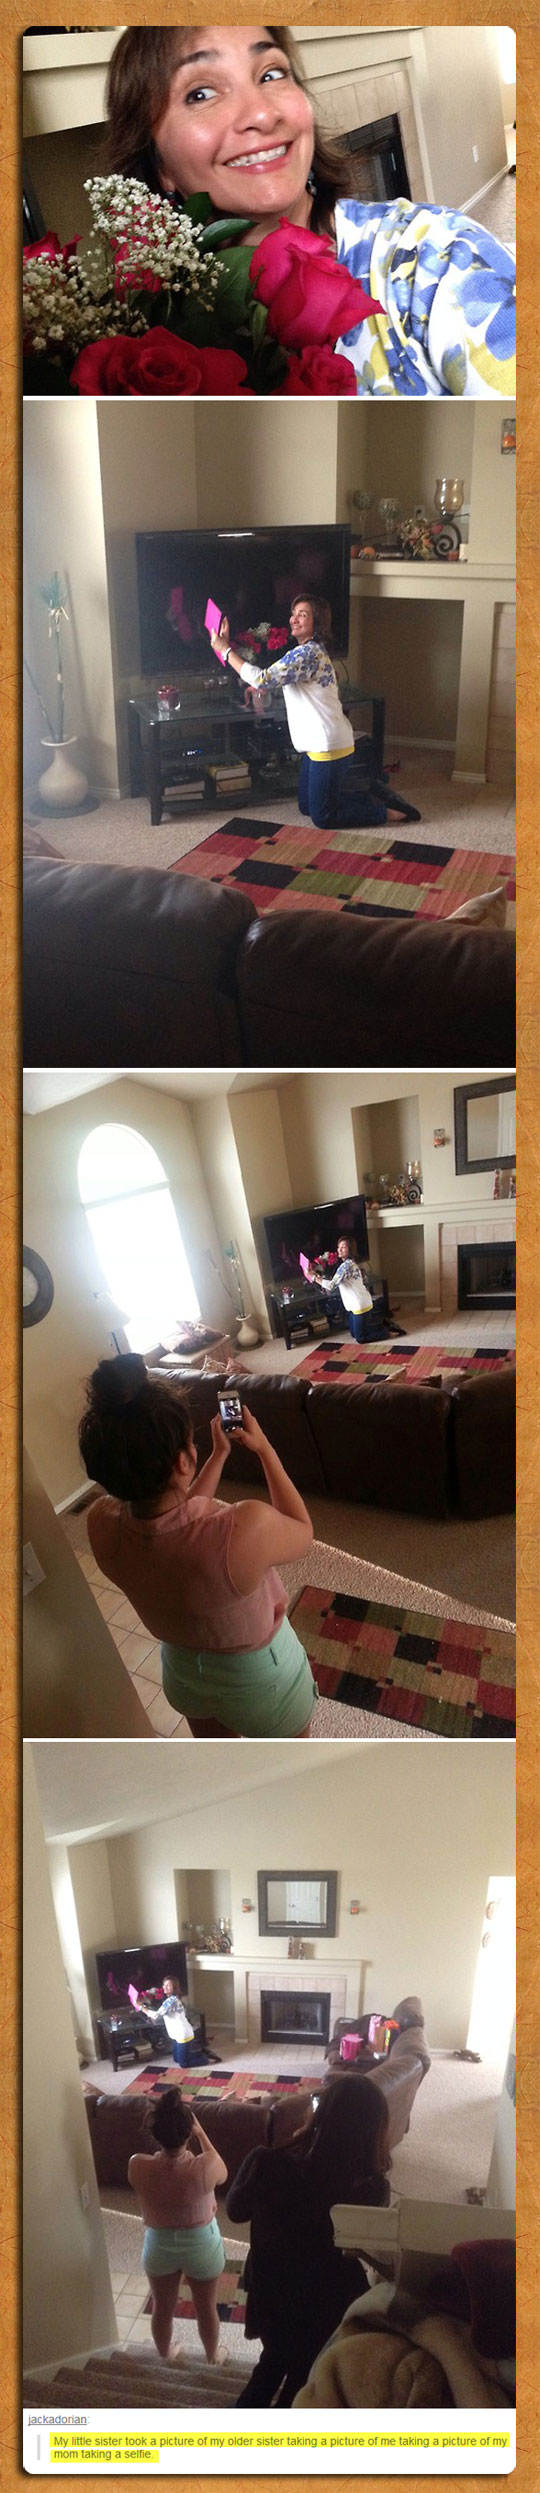 funny-mothers-day-selfie-gift